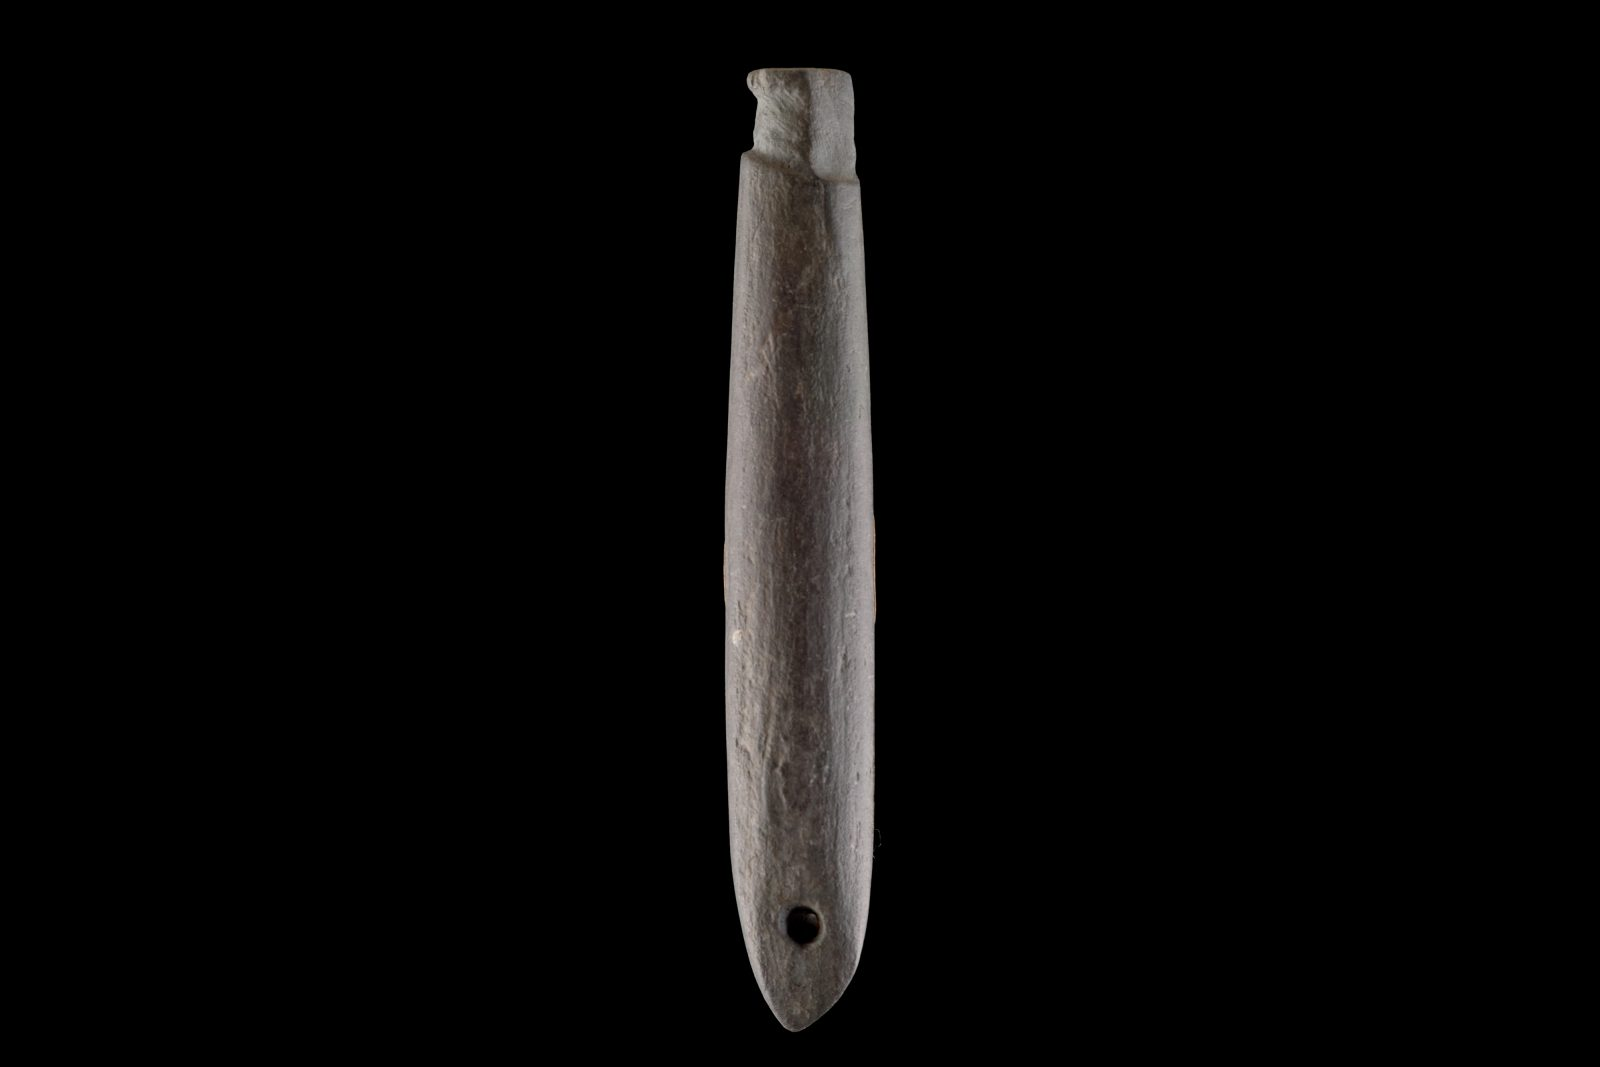 Stone shank minnow lures were replaced by lures made using wire lashed to a piece of paua shell after the arrival of Europeans. Archaeological examples of these fishing lures are mostly incomplete, as flax lashings holding the bone point in place decomposed months after they were discarded. Large numbers have been found in archaeological sites, and very few intact examples are known from museum collections.